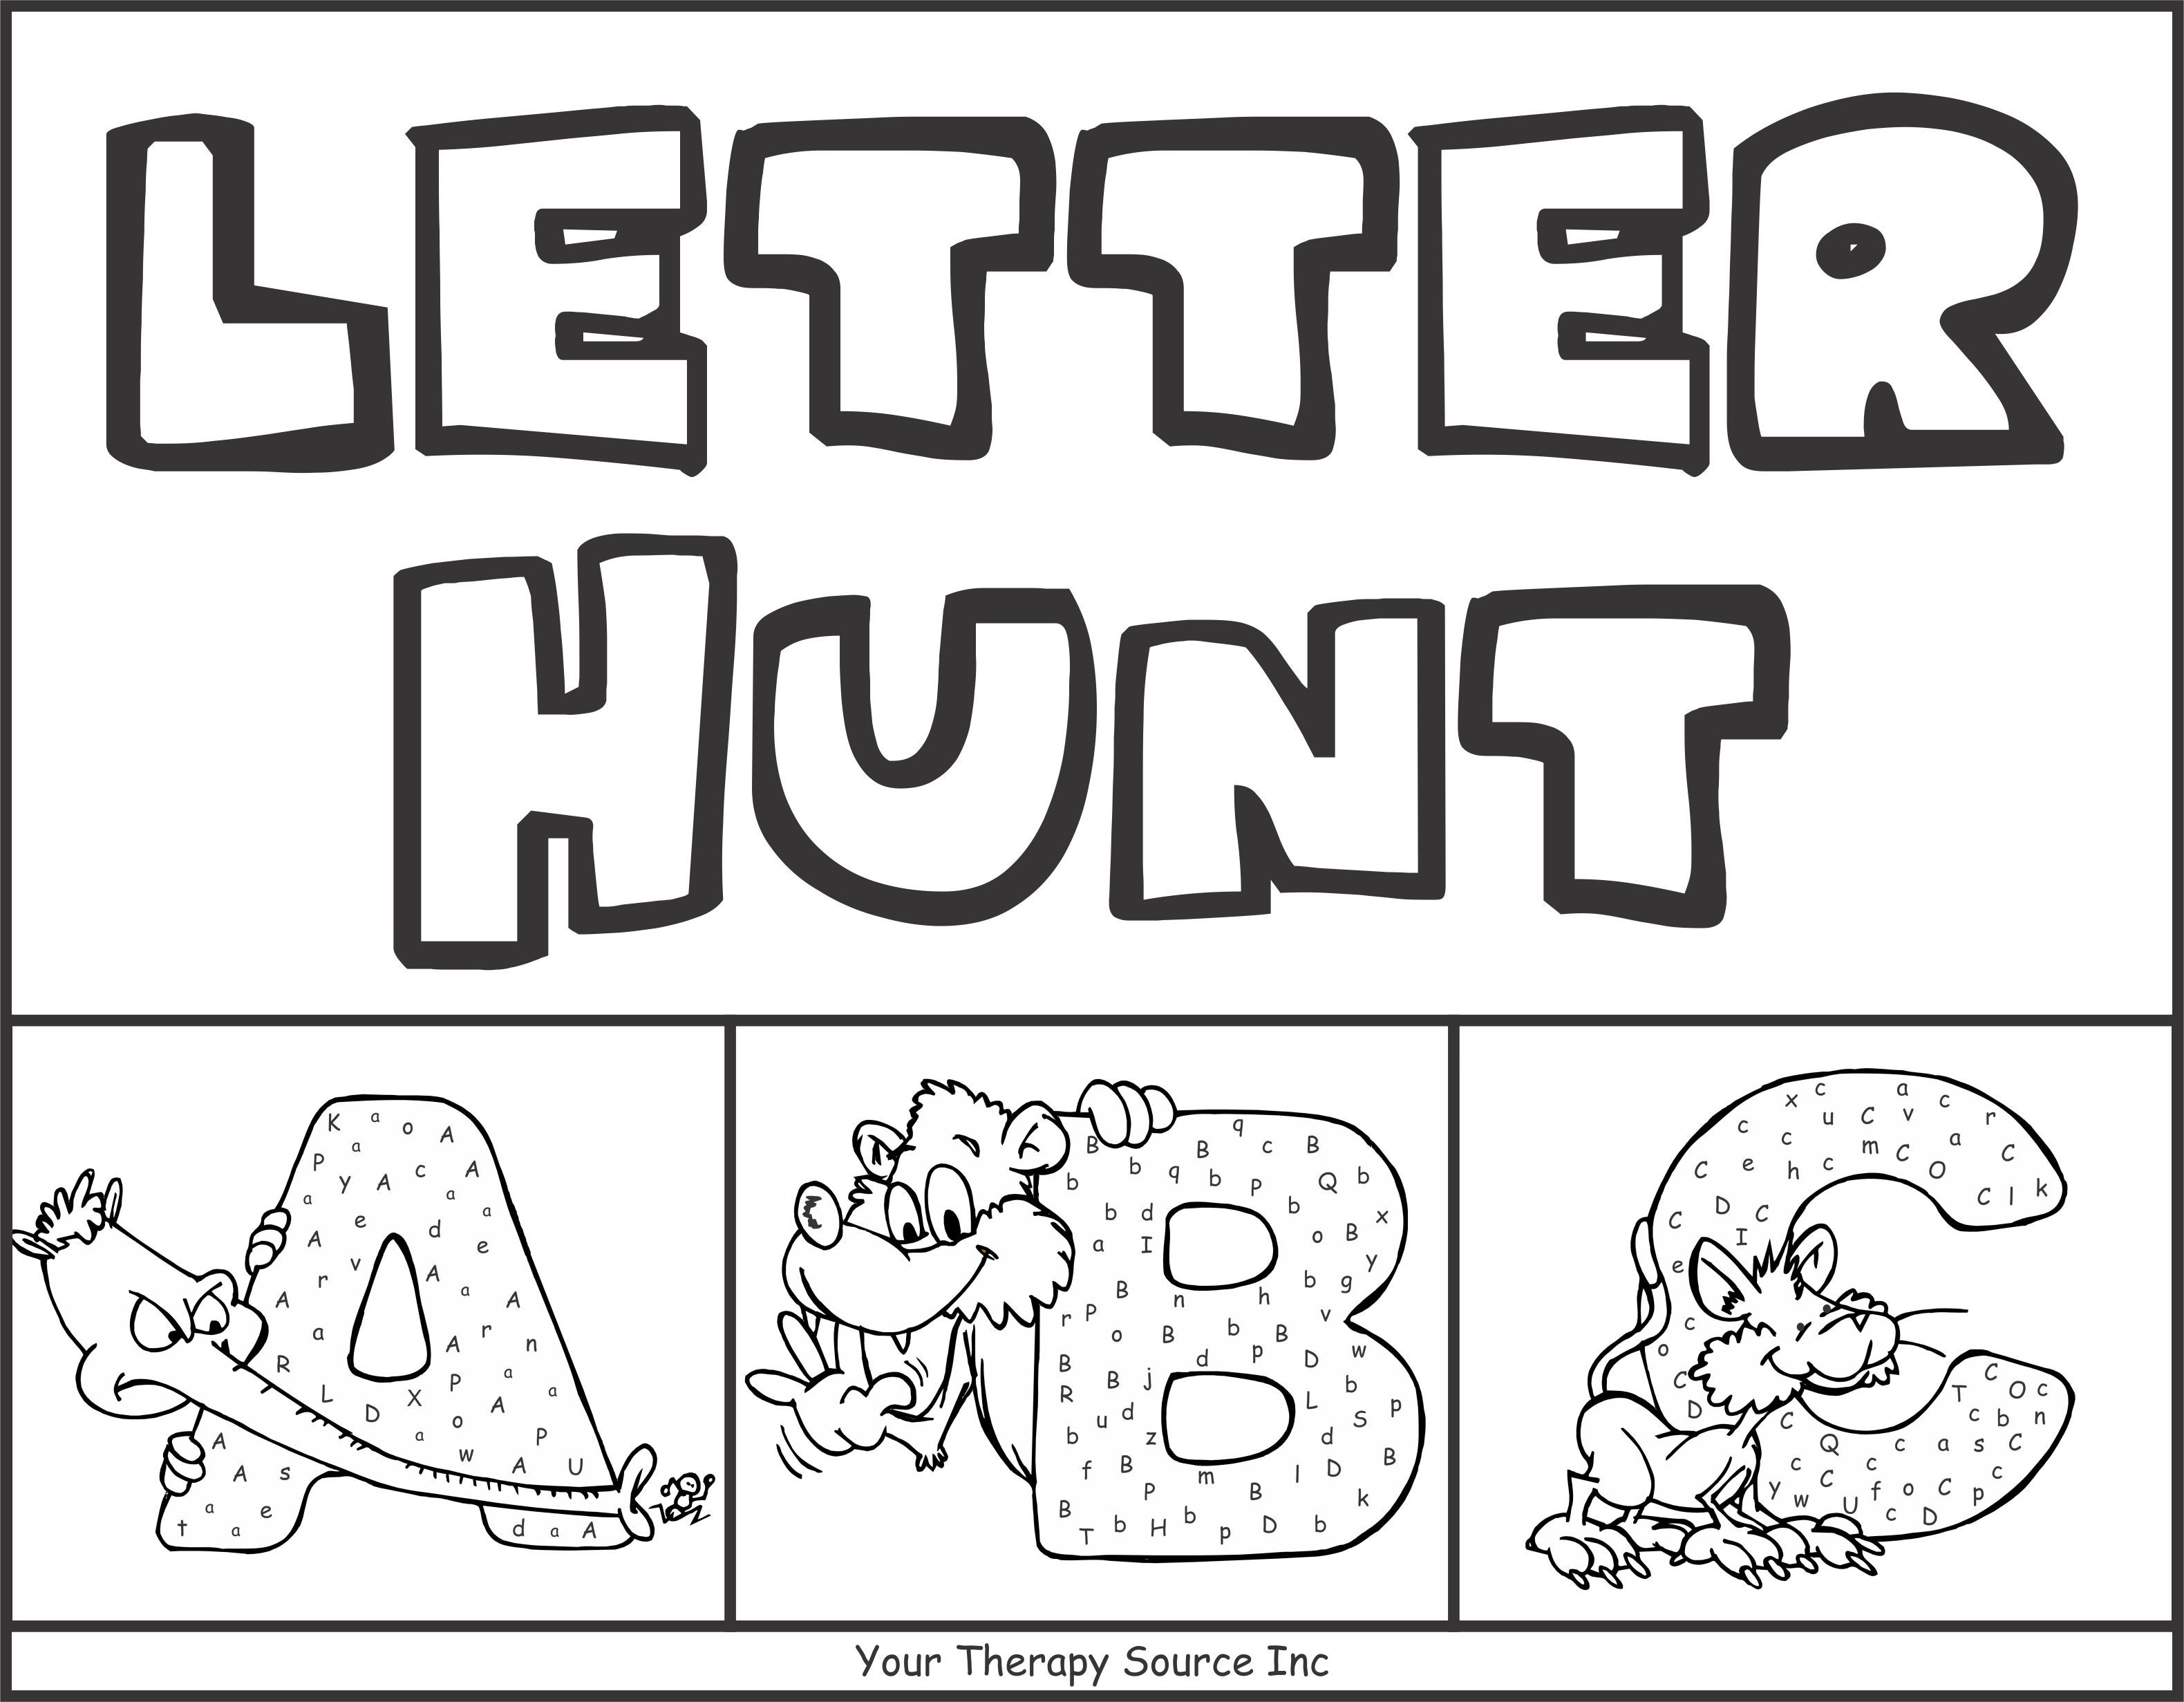 Letter Hunt from https://yourtherapysource.com/letterhunt.html